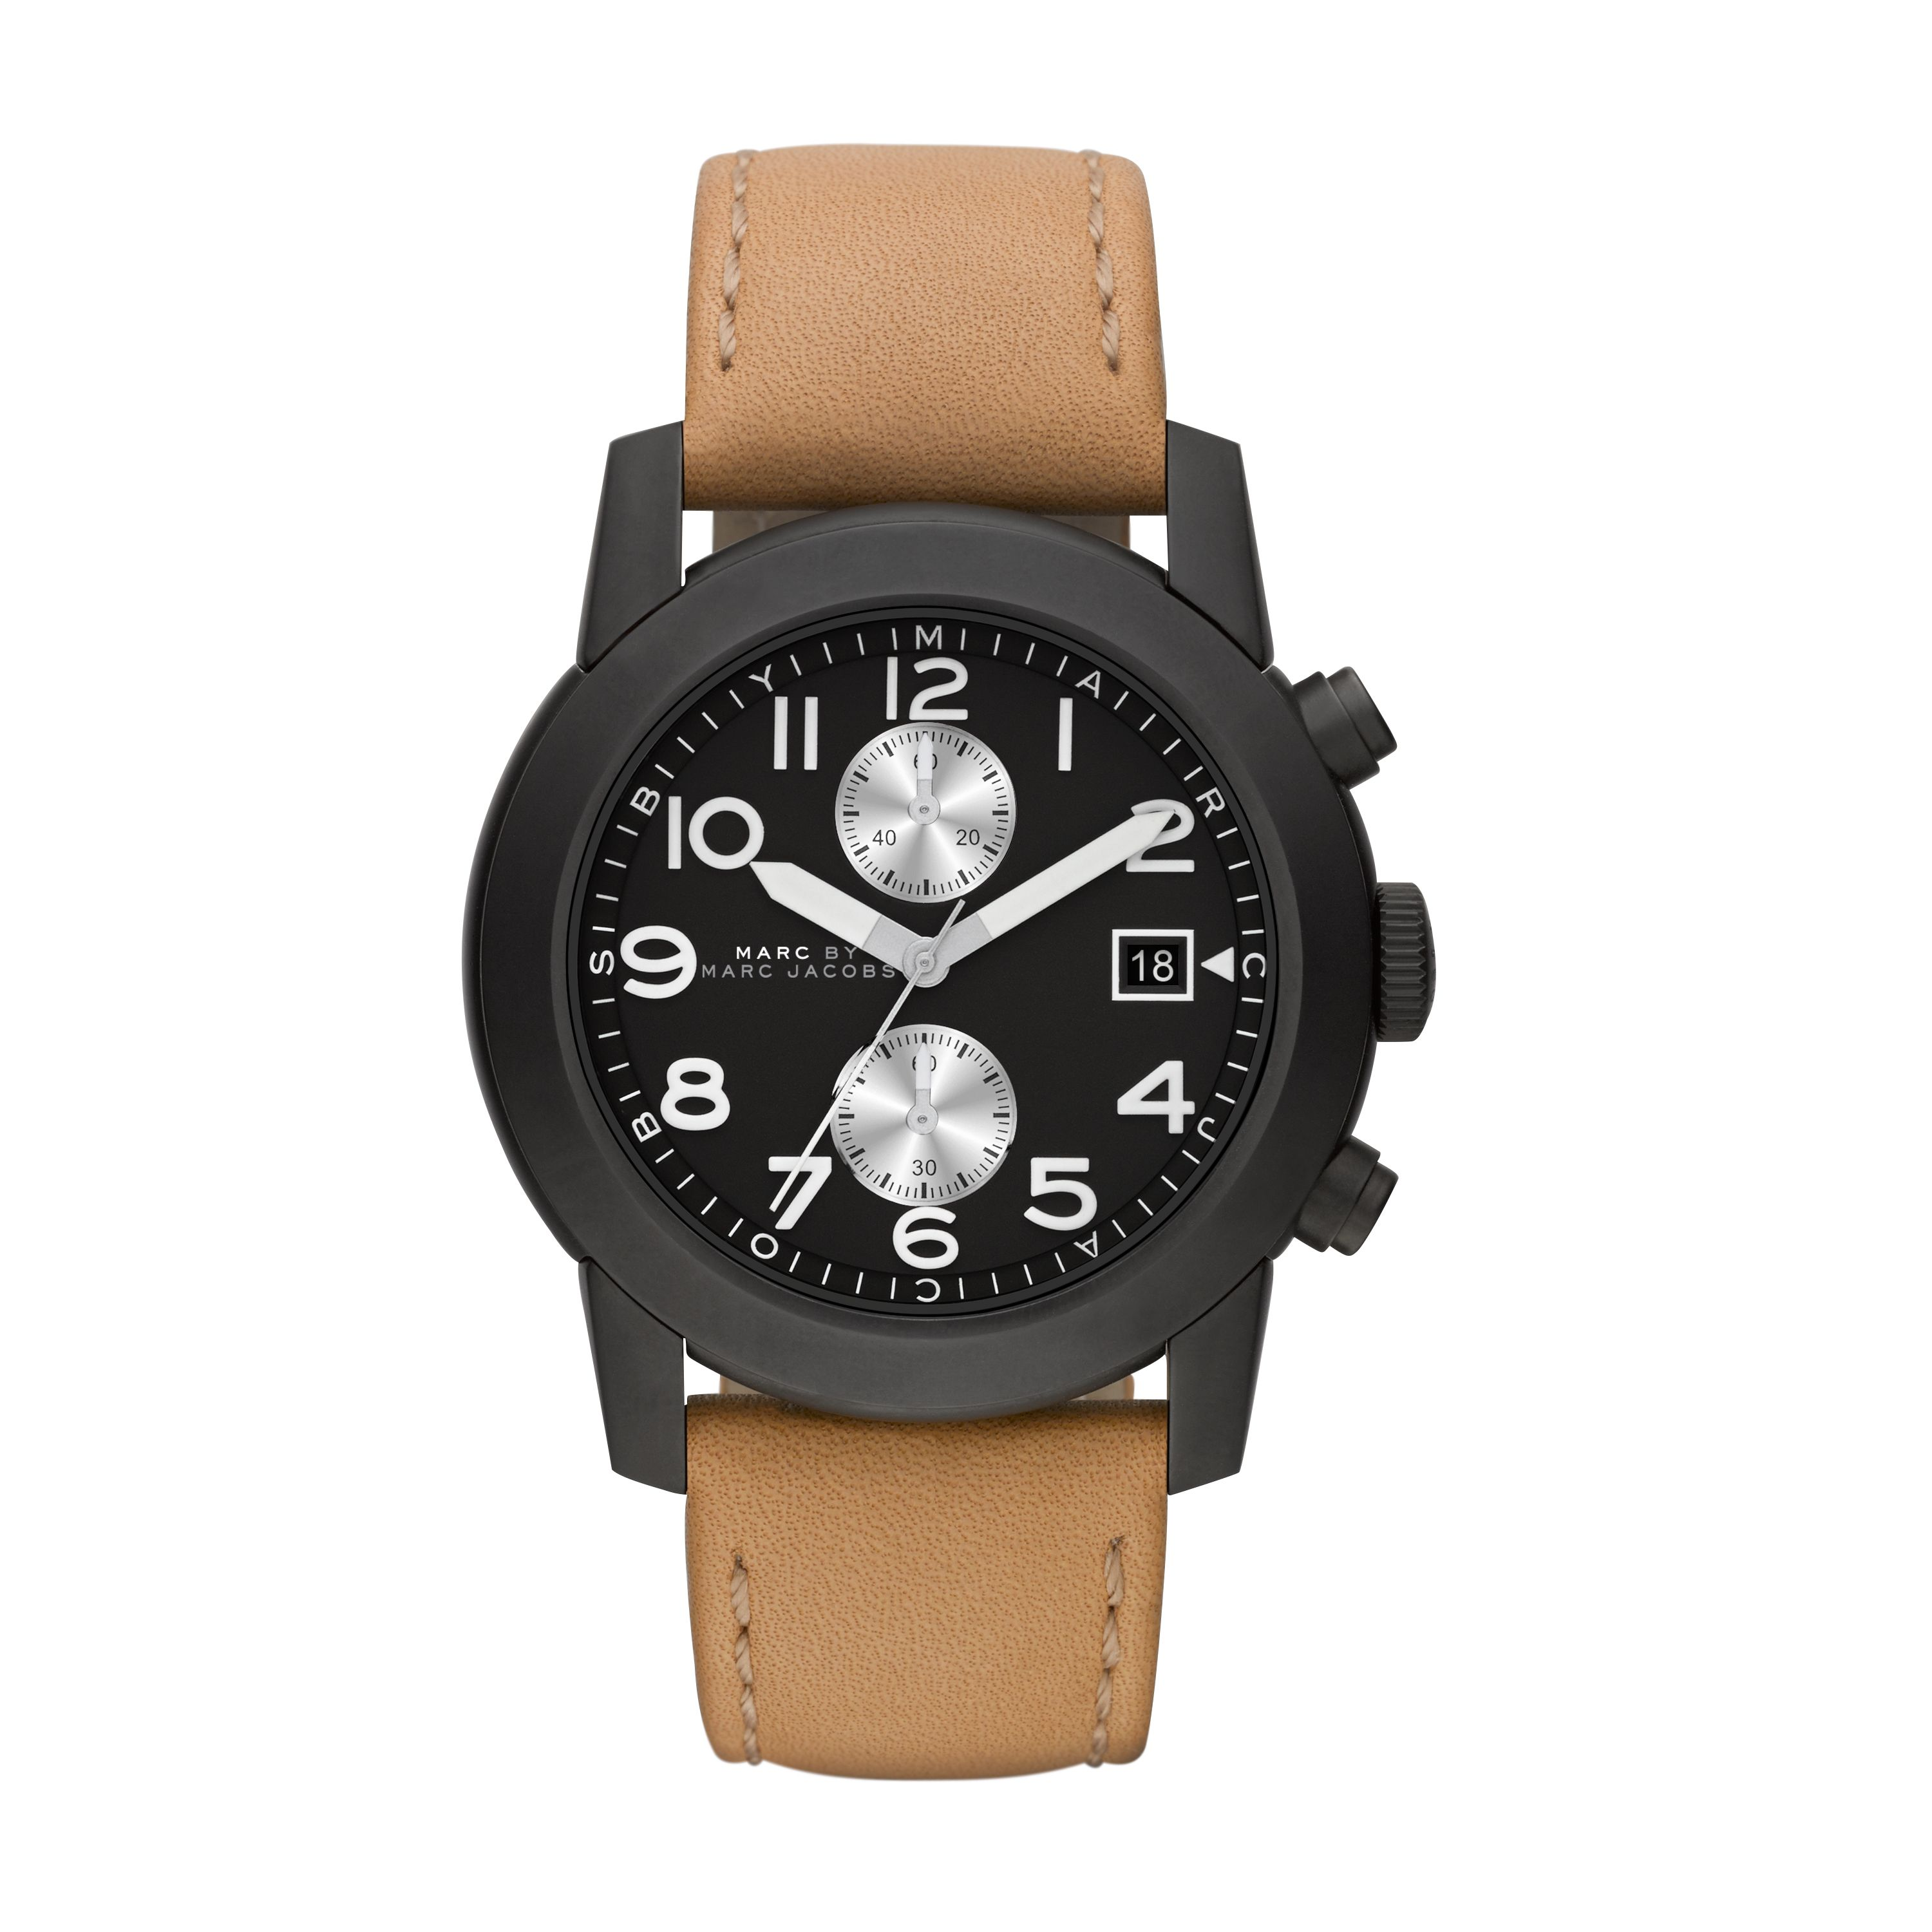 Larry tan leather mens military watch